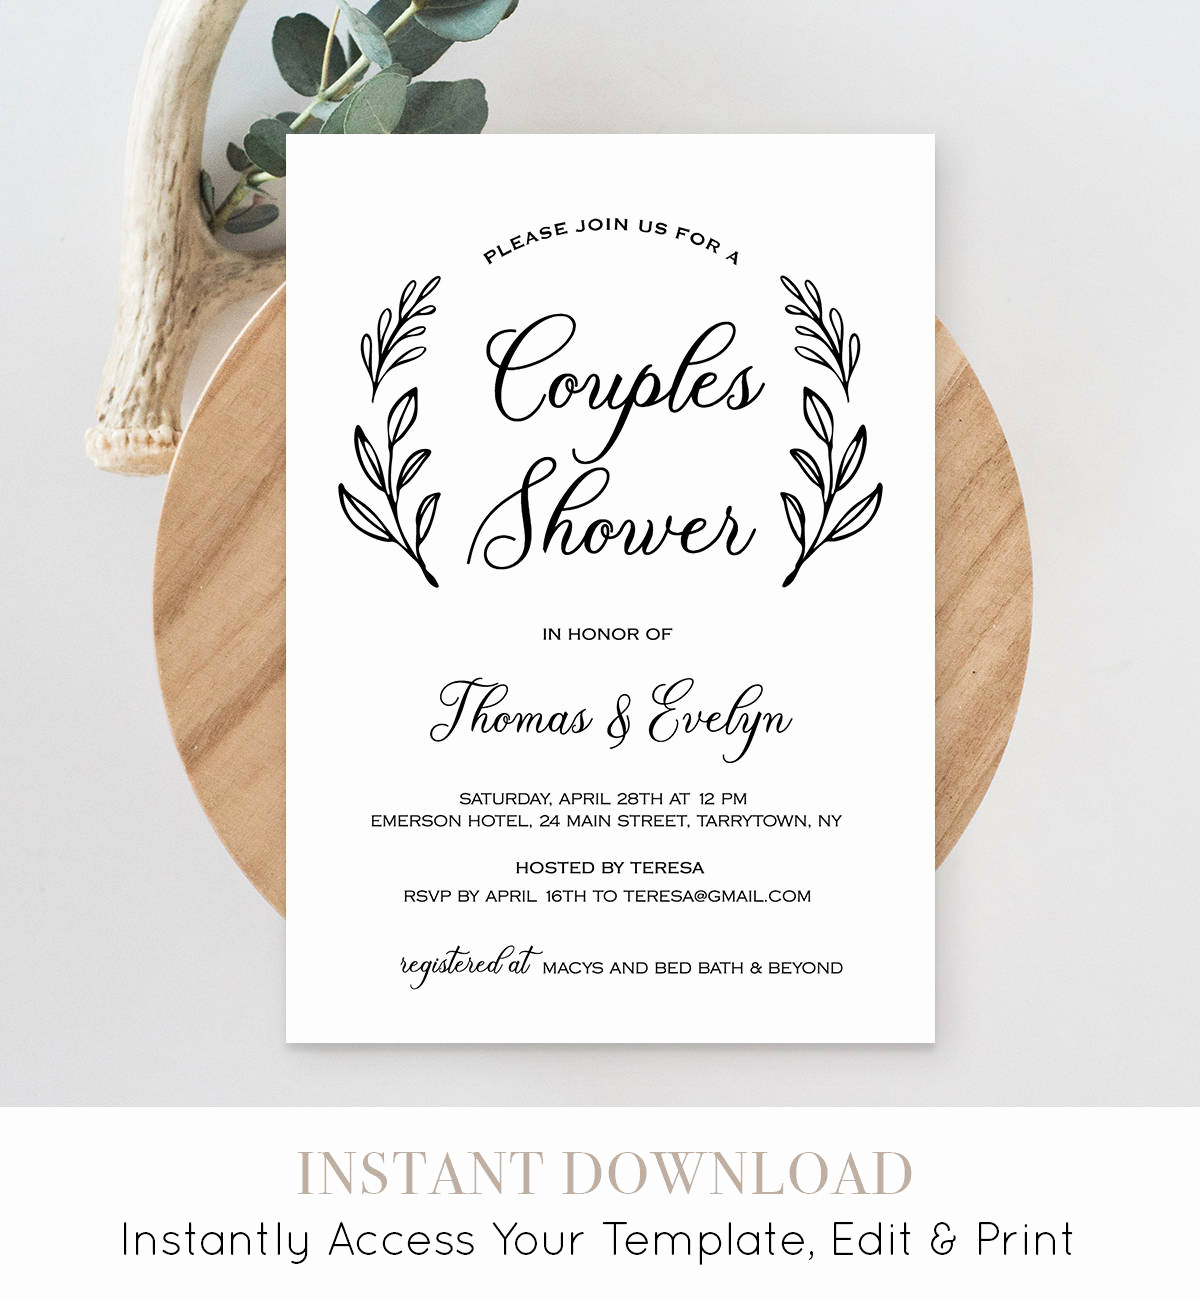 Couples Shower Invitation Templates Elegant Couples Shower Invitation Template Printable Wedding Shower